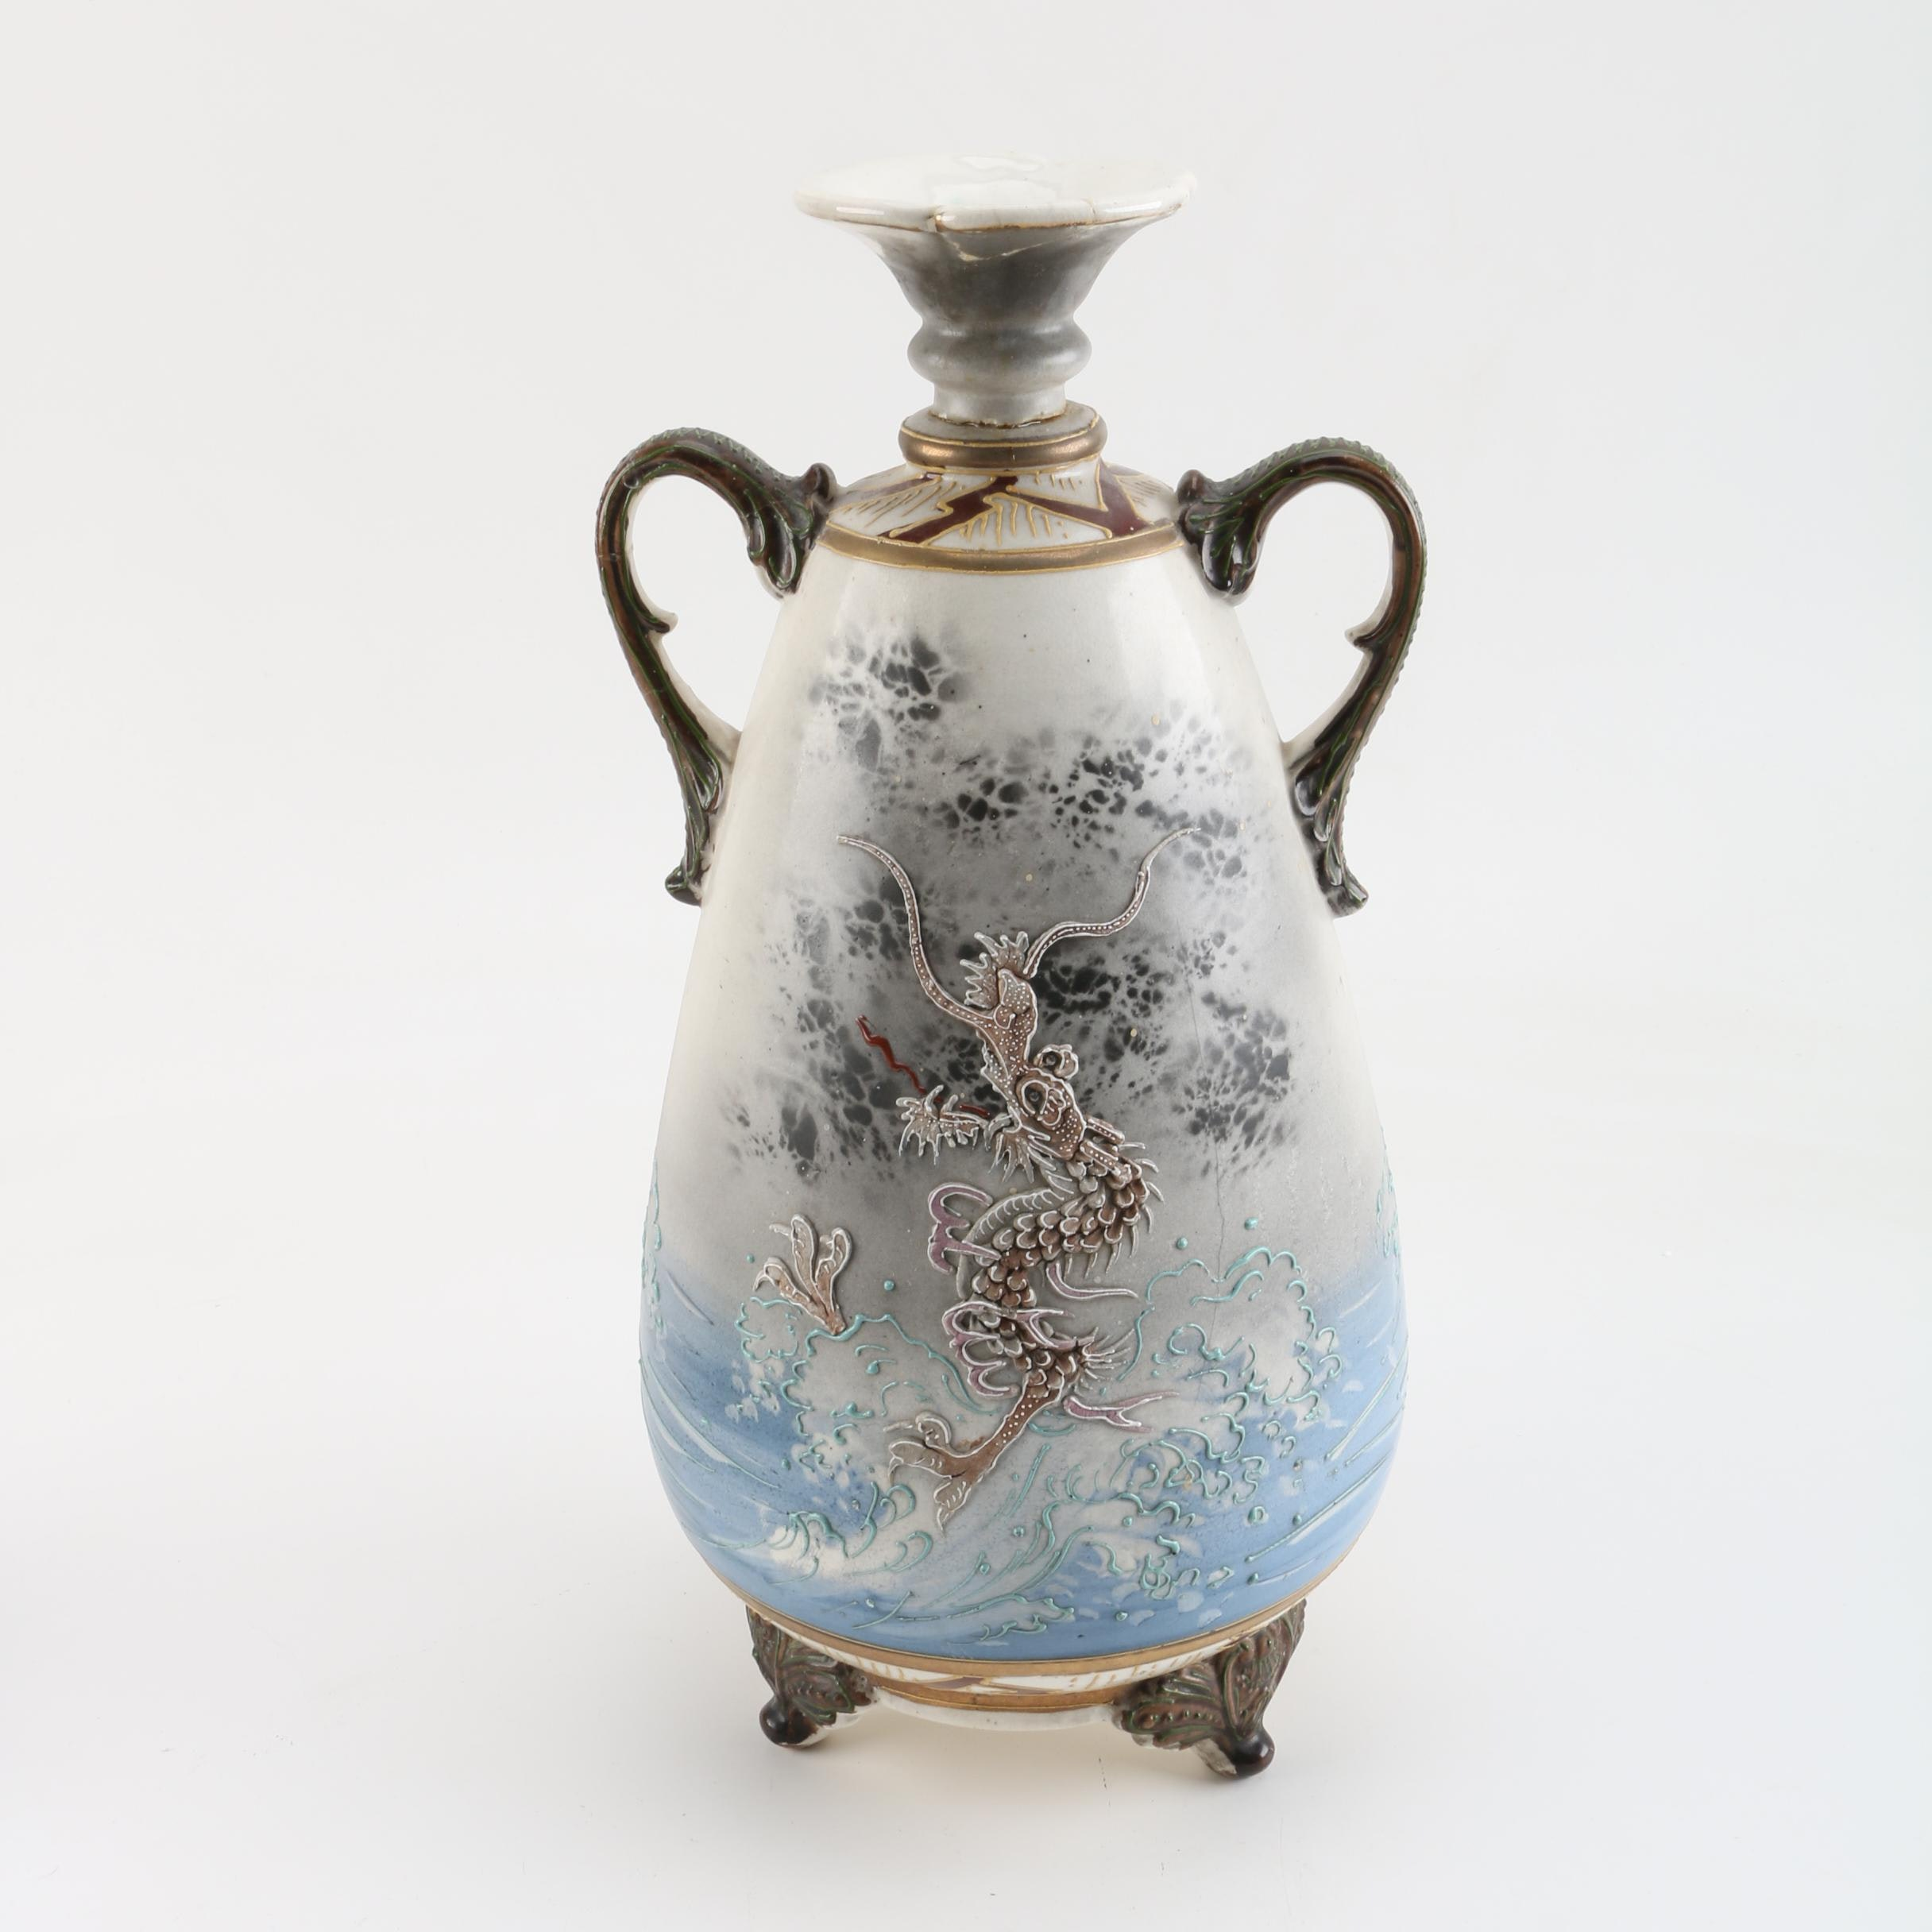 Japanese Ceramic and Brass Dragonware Urn